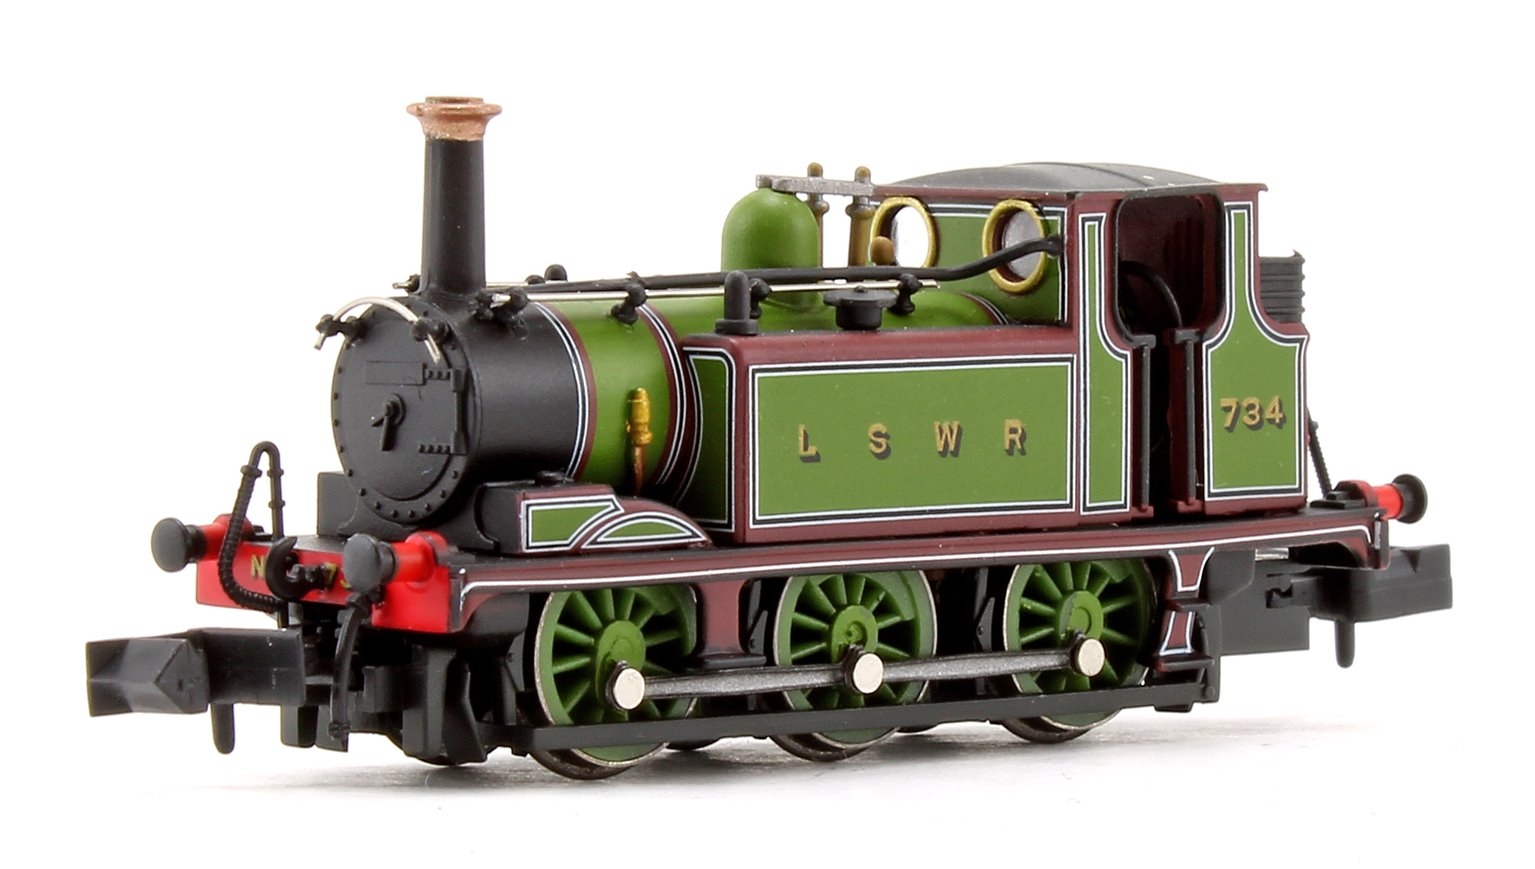 Terrier A1 LSWR Green Locomotive No.734